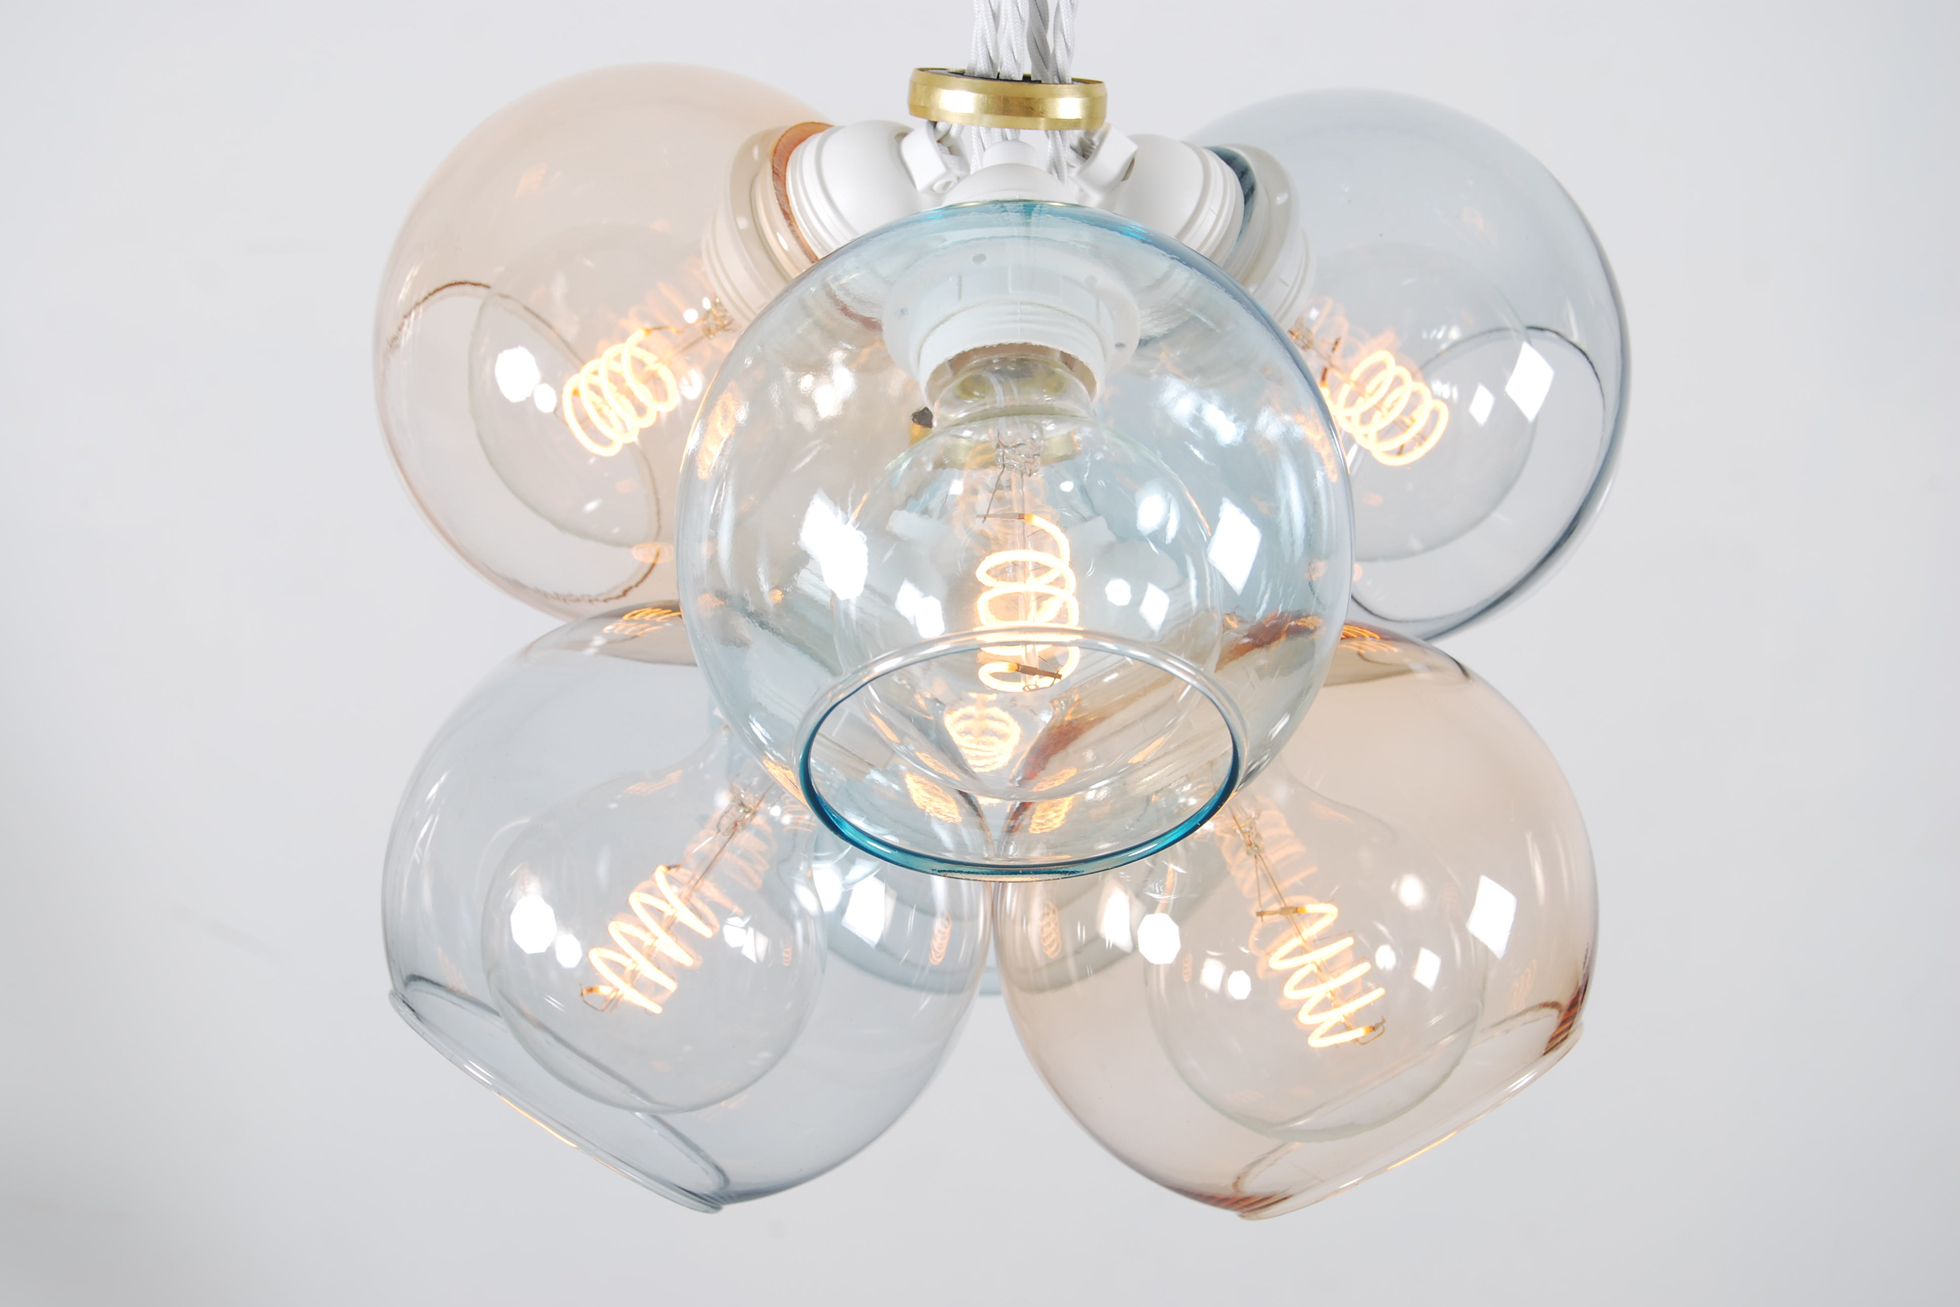 A group of clear stylish light bulbs